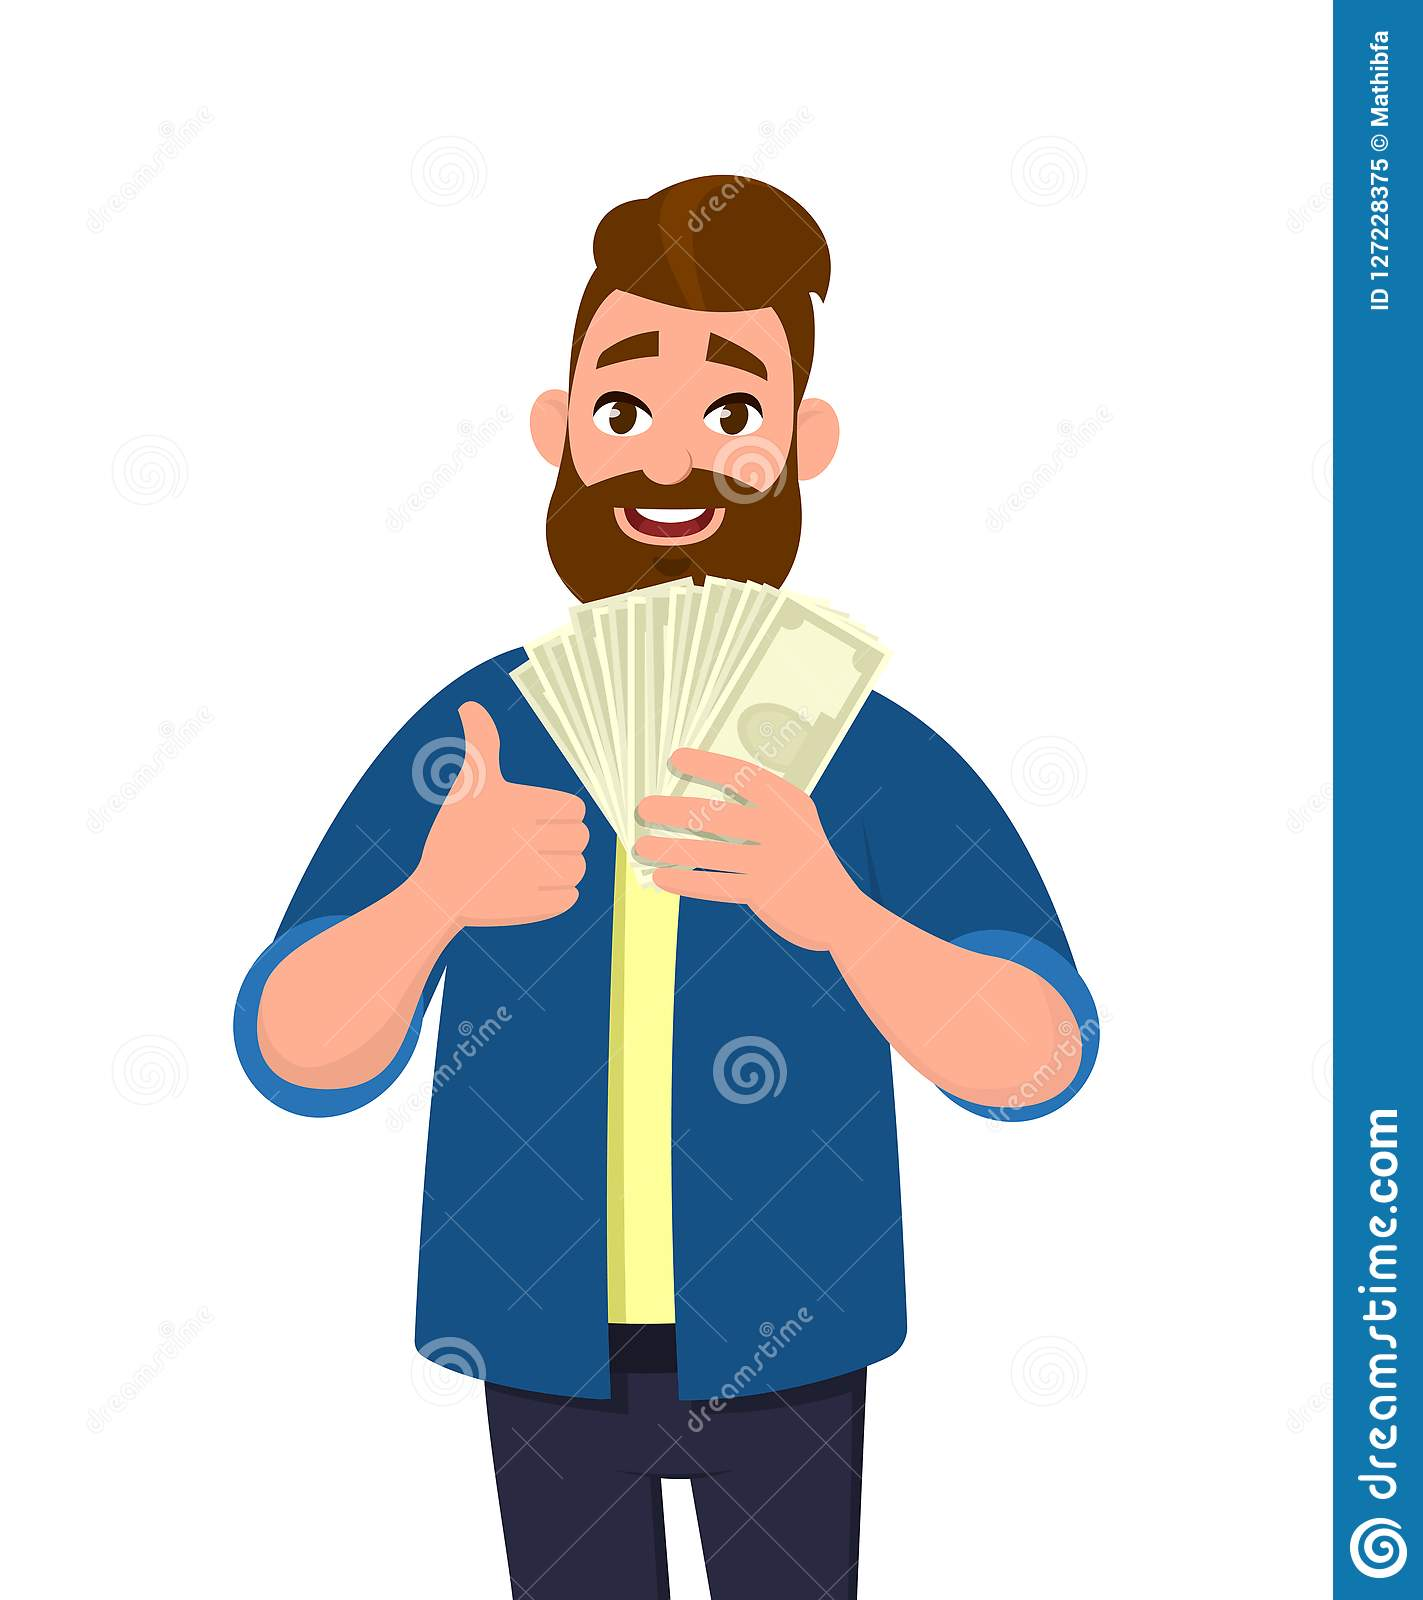 Happy young man holding cash/money/banknotes and showing thumbs up or like sign. Financial money concept. Human emotion concept.